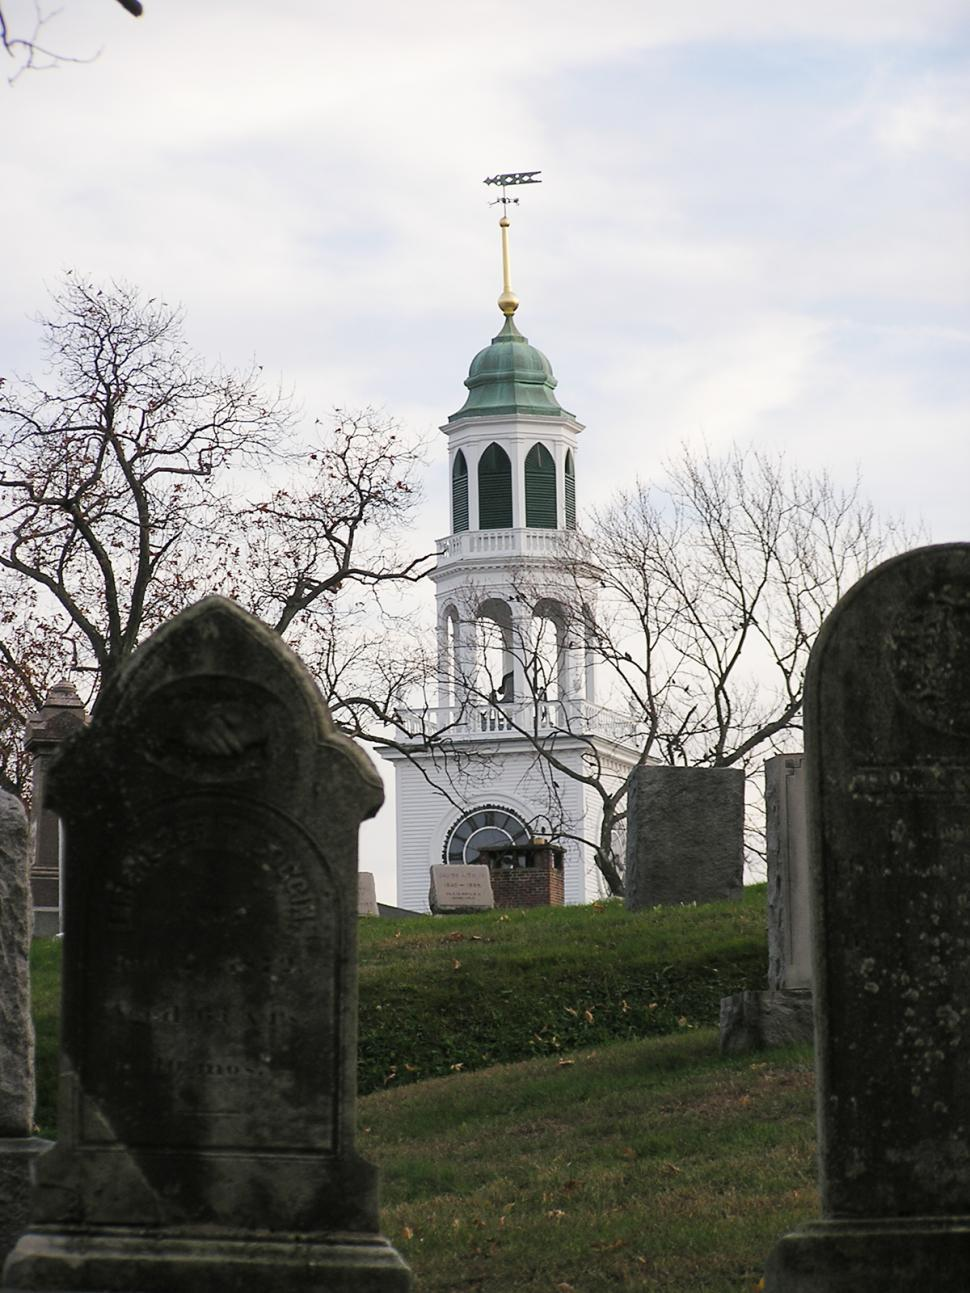 Download Free Stock HD Photo of Church from cemetary Online